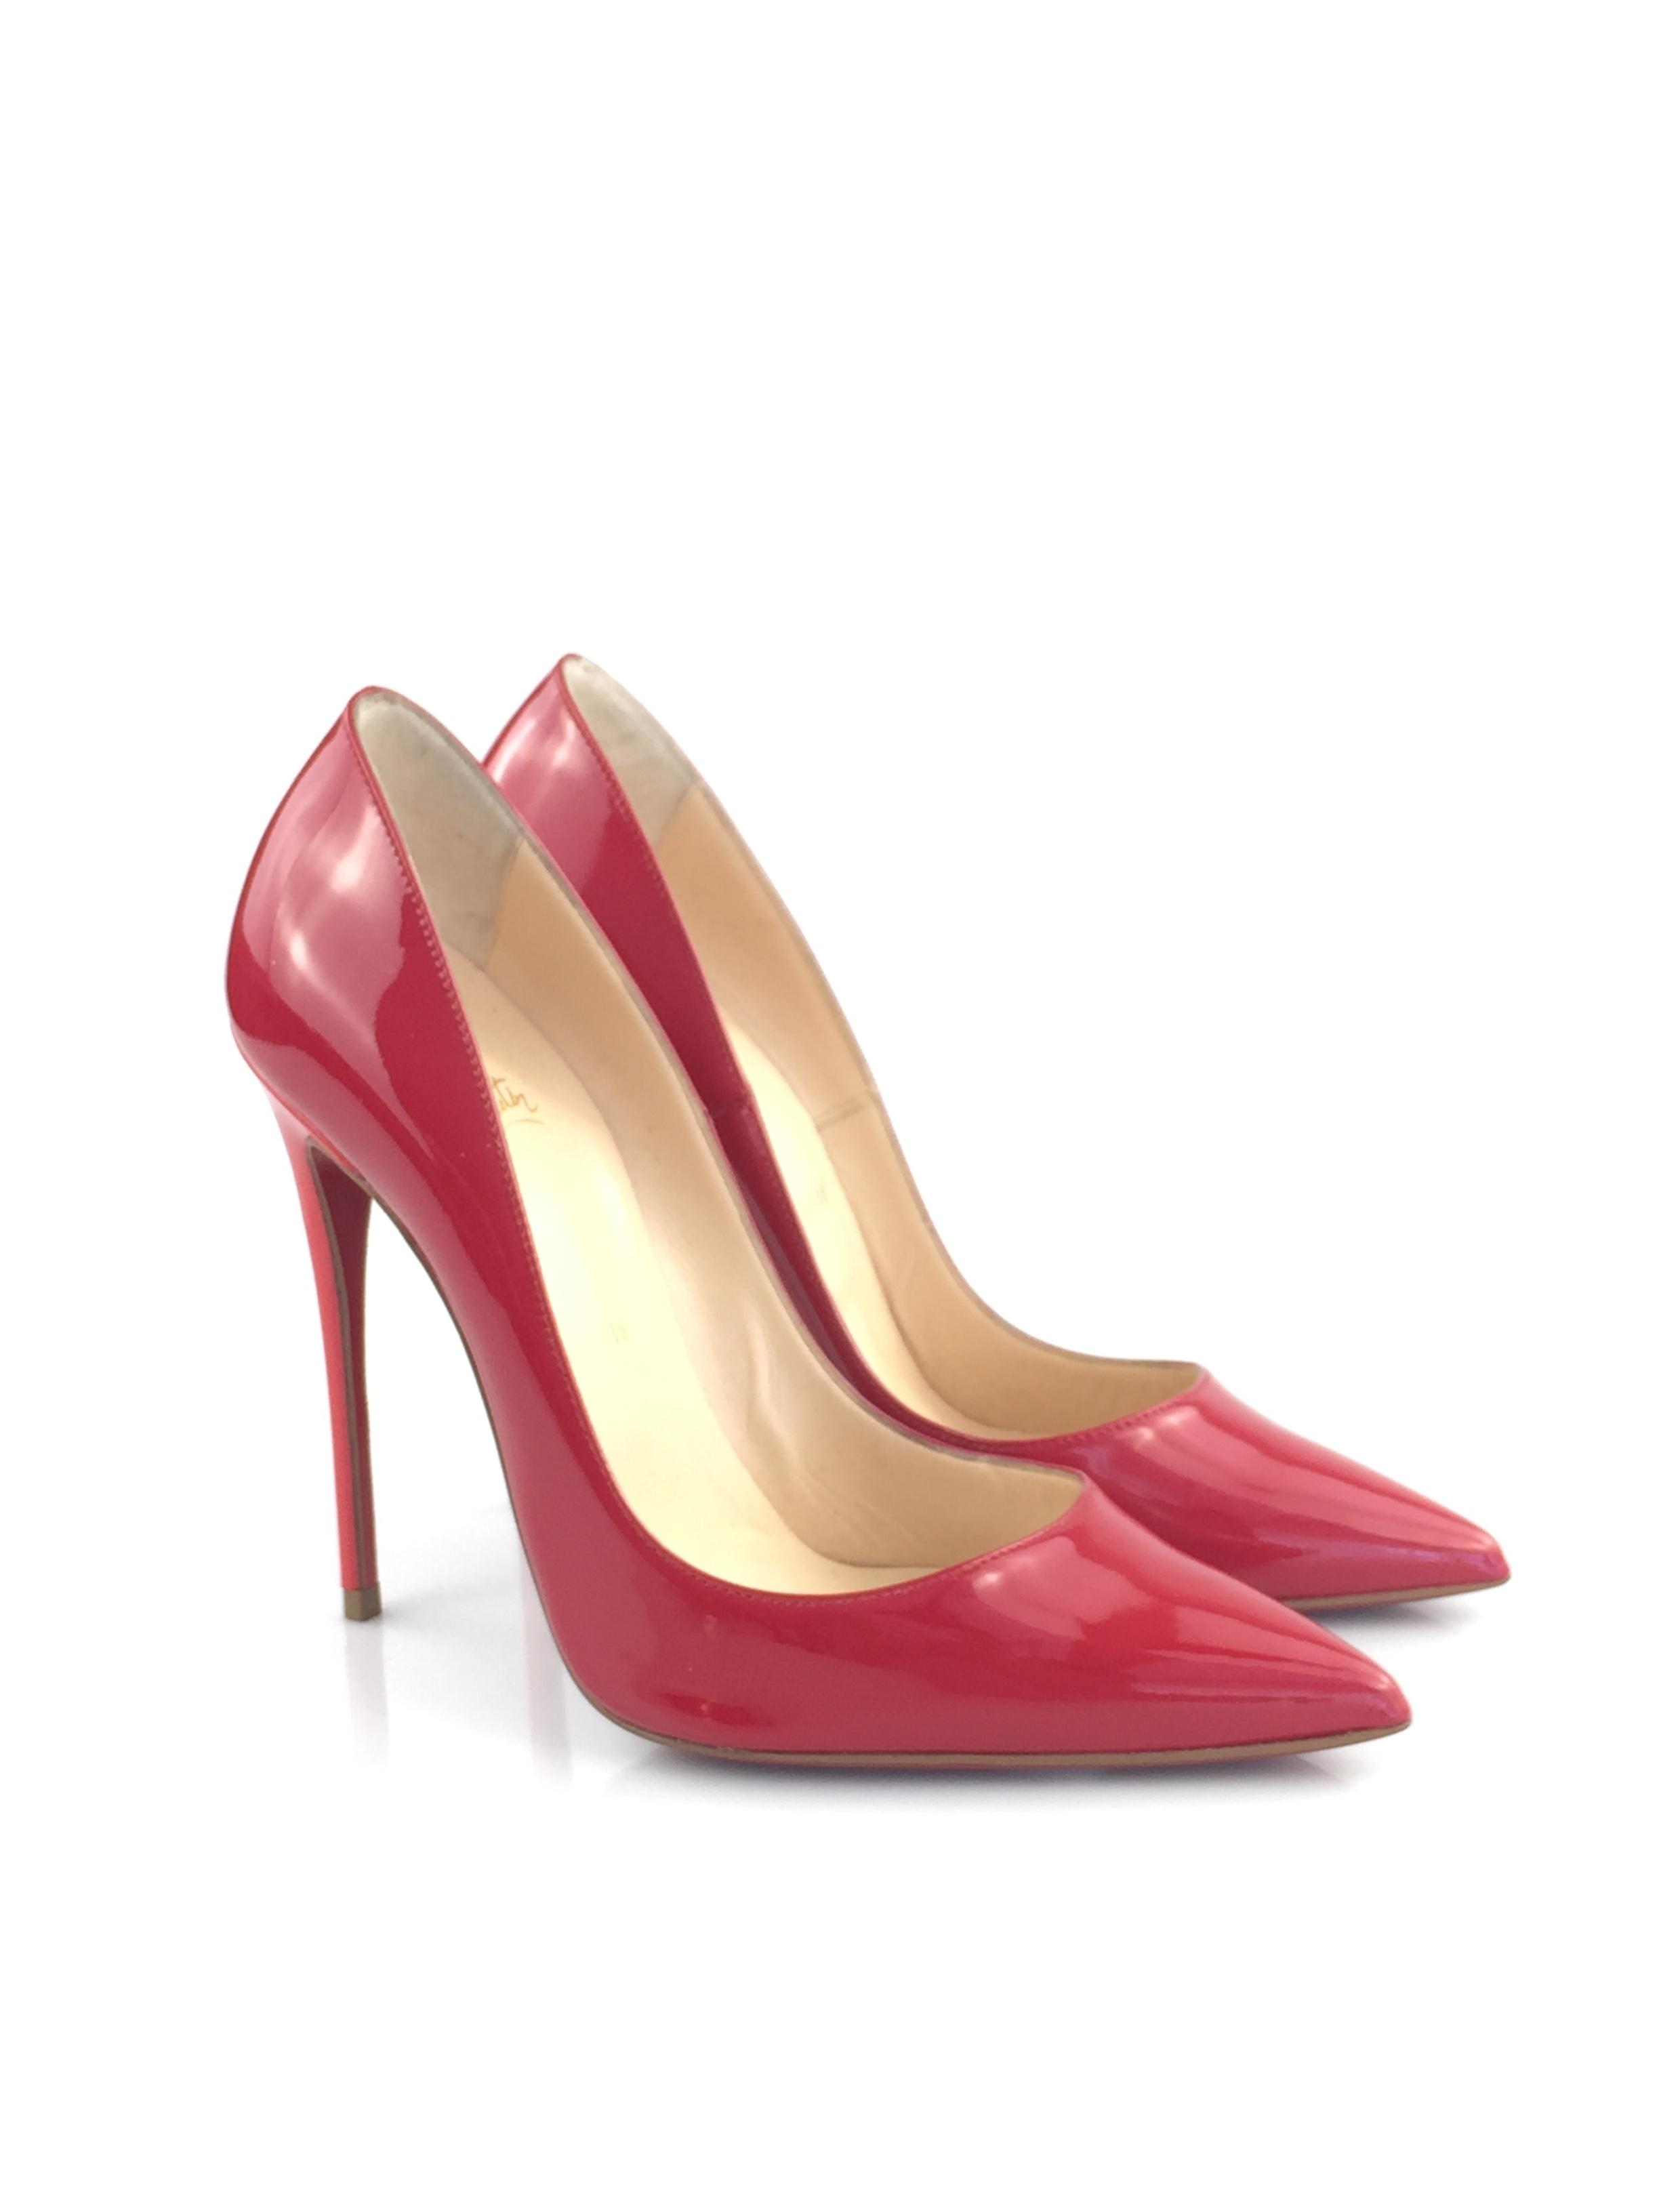 5273edeff1c8 Christian Louboutin Red Classic Classic Classic So Kate 120mm Patent  Leather Point-toe Pink Heel Pumps Size EU 38.5 (Approx. US 8.5) Regular (M